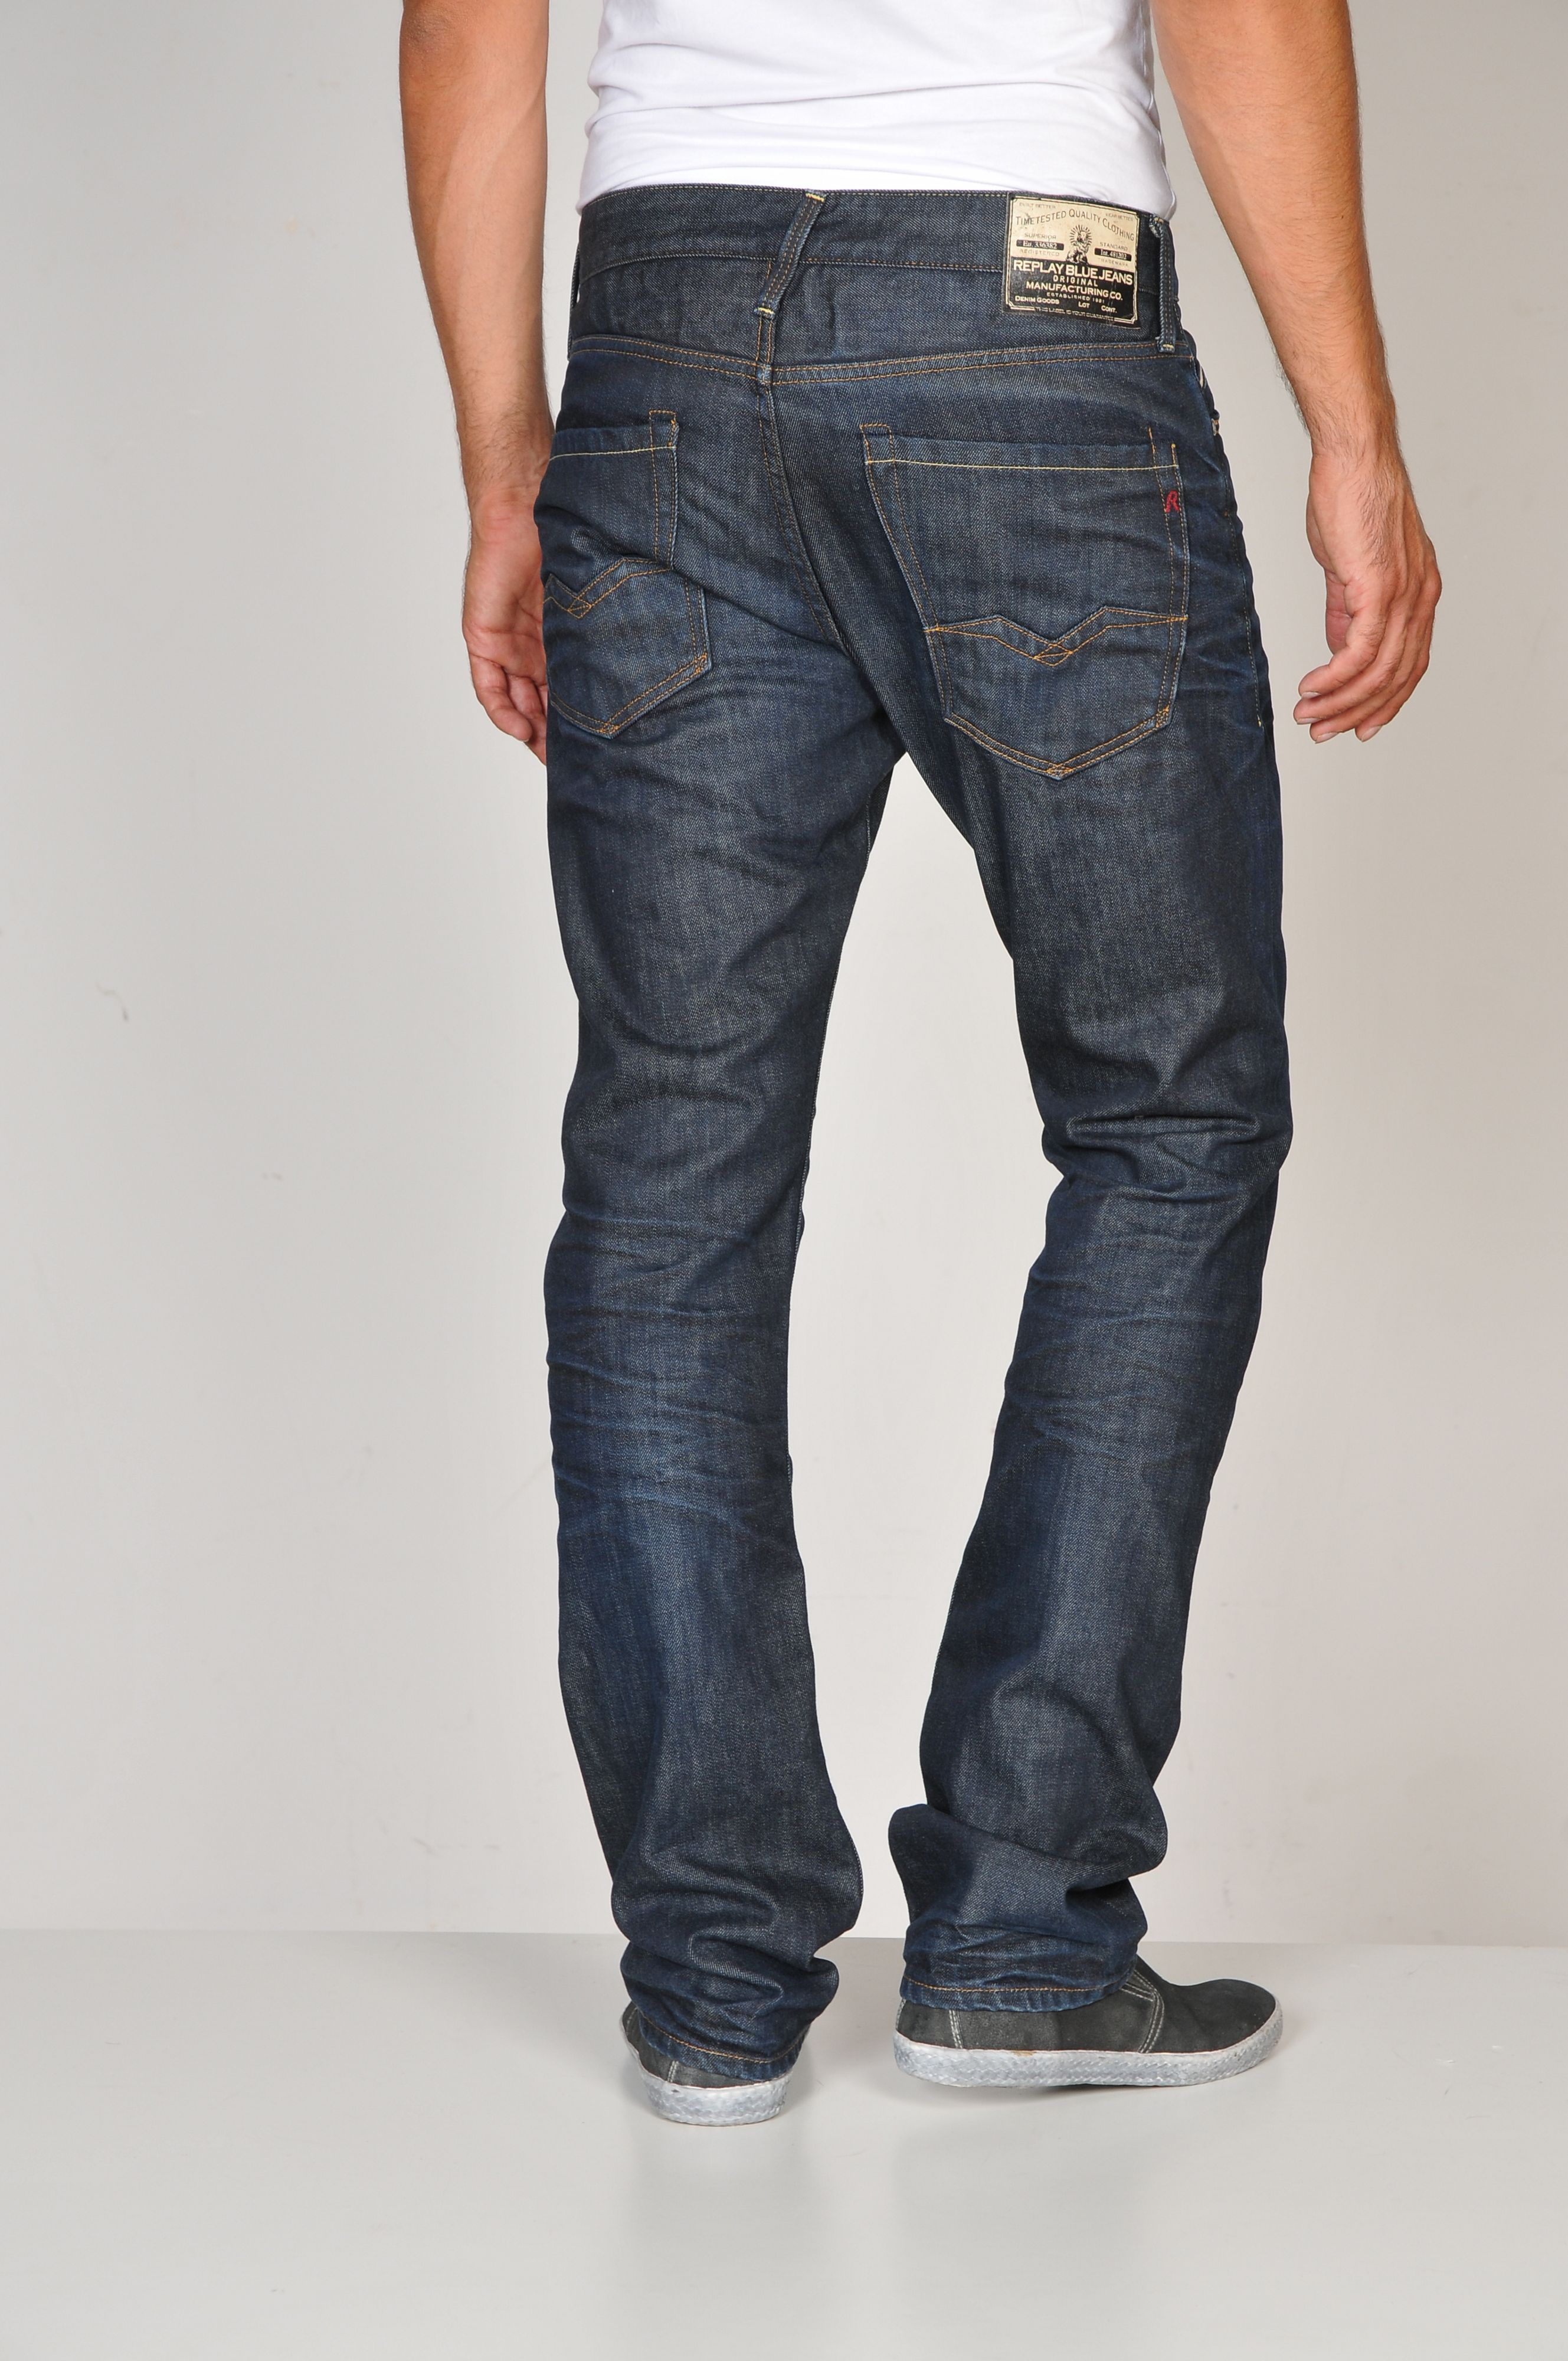 Waitom 118 110 regular slim fit jeans